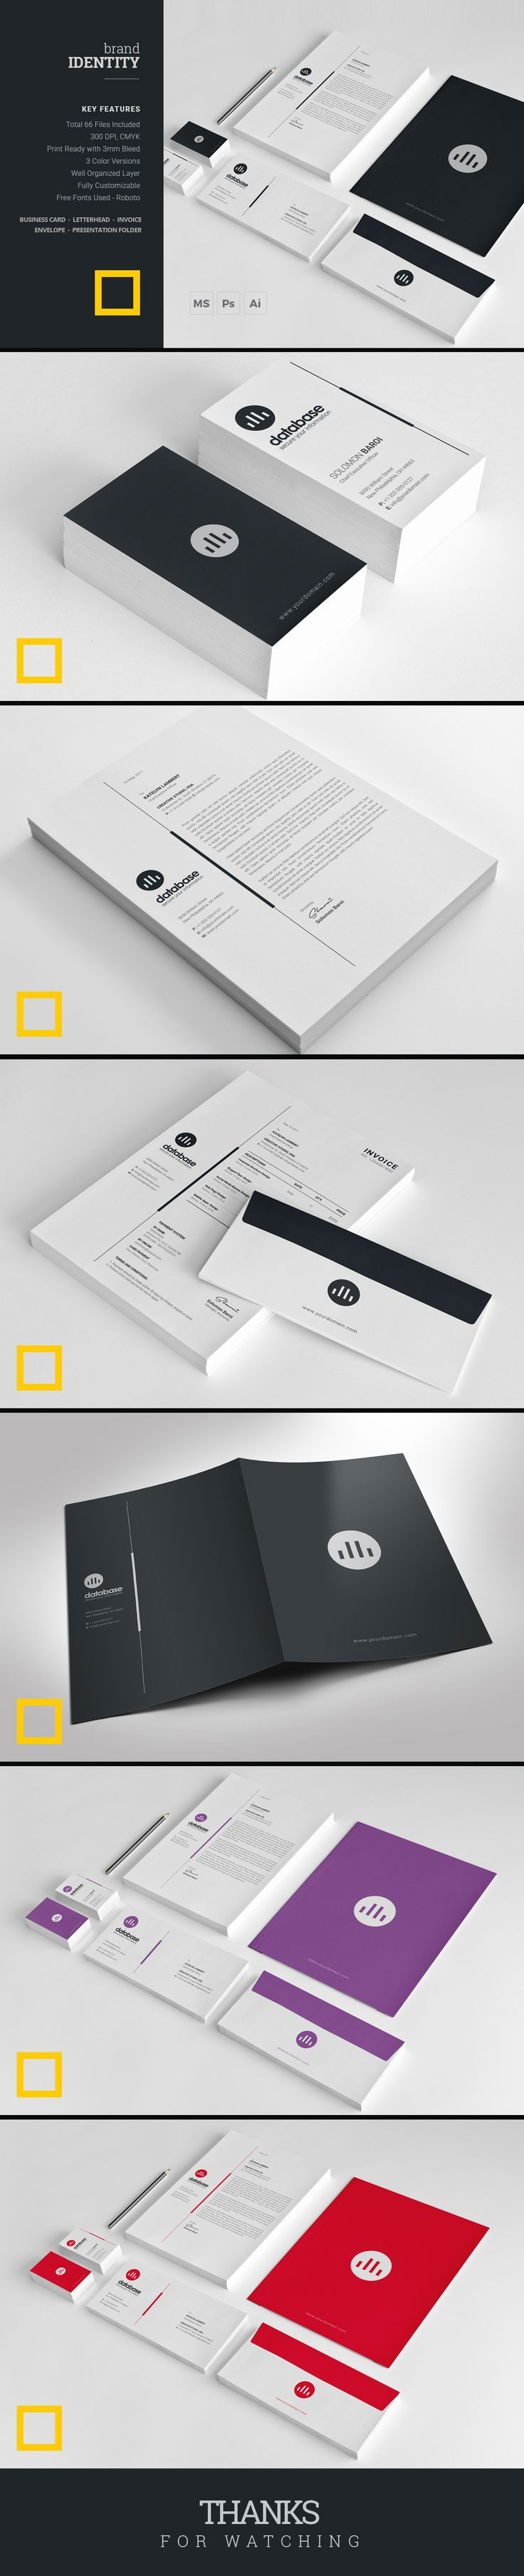 This brand identity is very much modern and elegant and it will definitely attract your prospective clients. This Modern and Essential Brand Identity Pack with minimal and clean look will create a fresh impression of your business which is essential for your corporate branding.